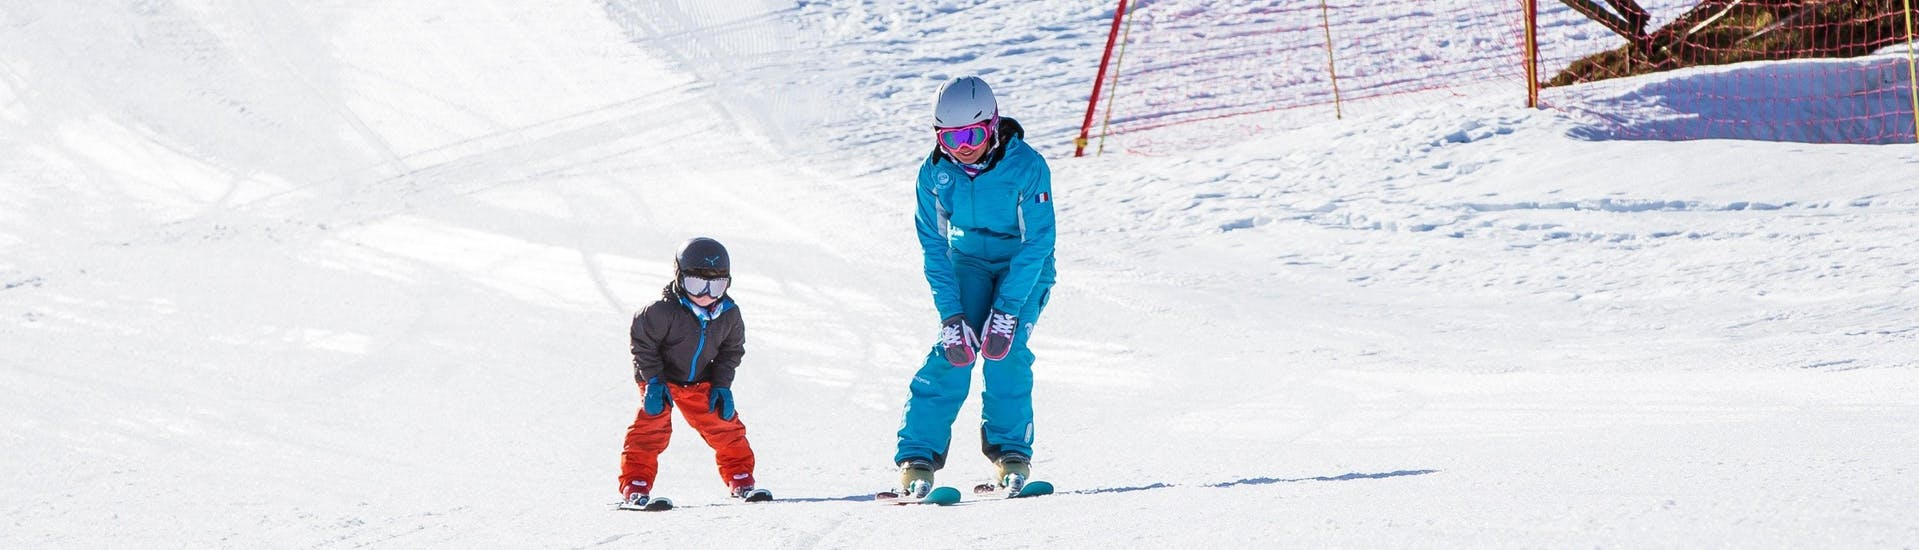 A young skier is gaining confidence on his skis alongside a ski instructor from the ski school ESI Ski Family in Val Thorens thanks to his Private Ski Lessons for Kids of All Levels - Midday.